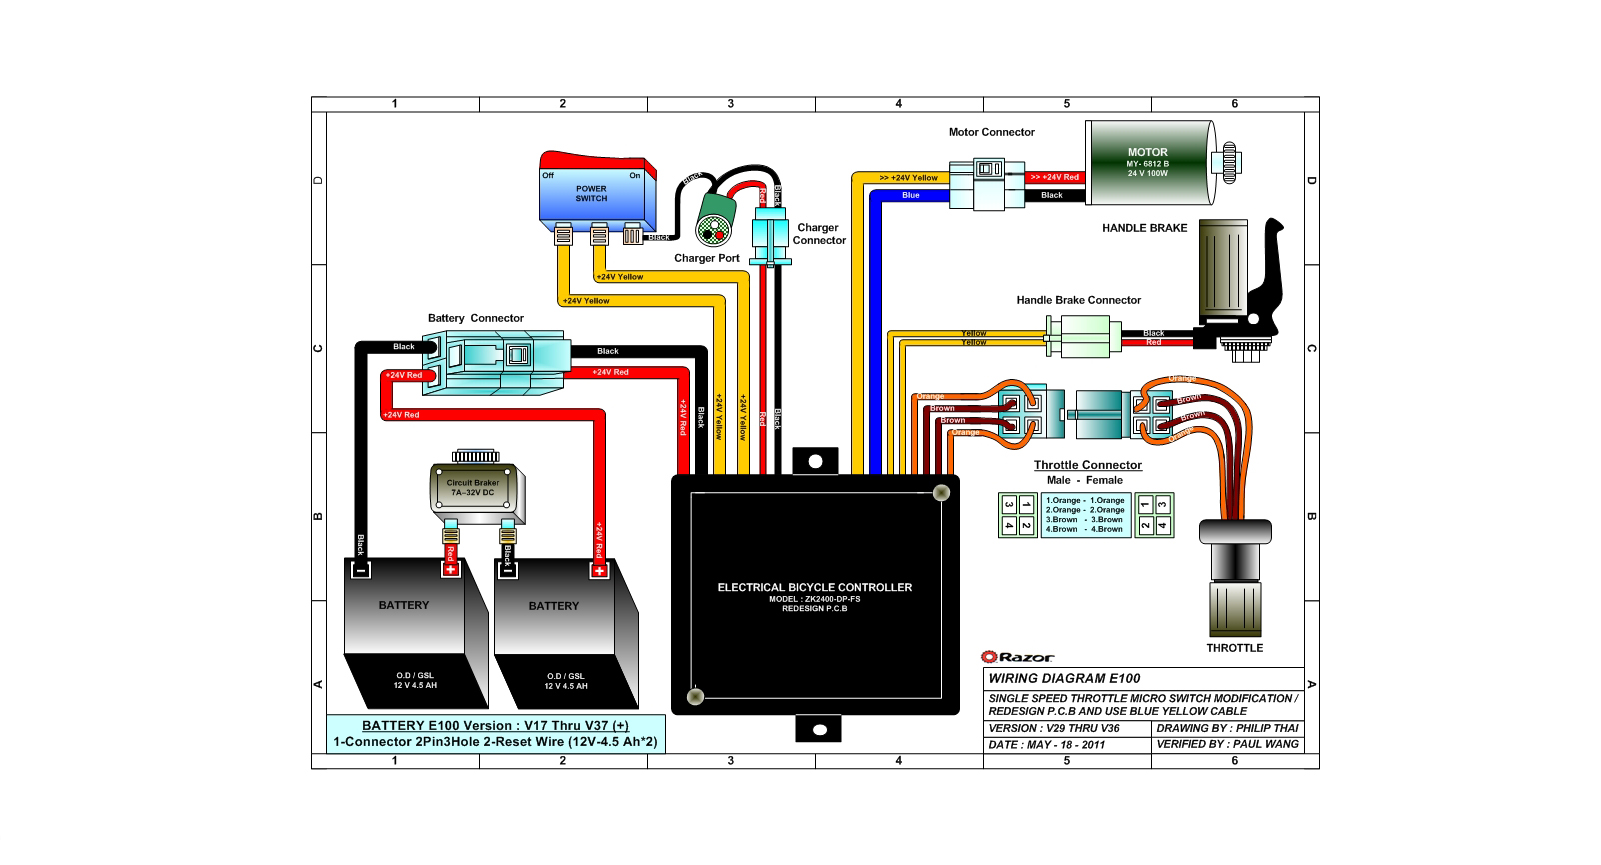 razor e100 electric scooter wiring diagram precipitation water cycle manuals versions 29 36